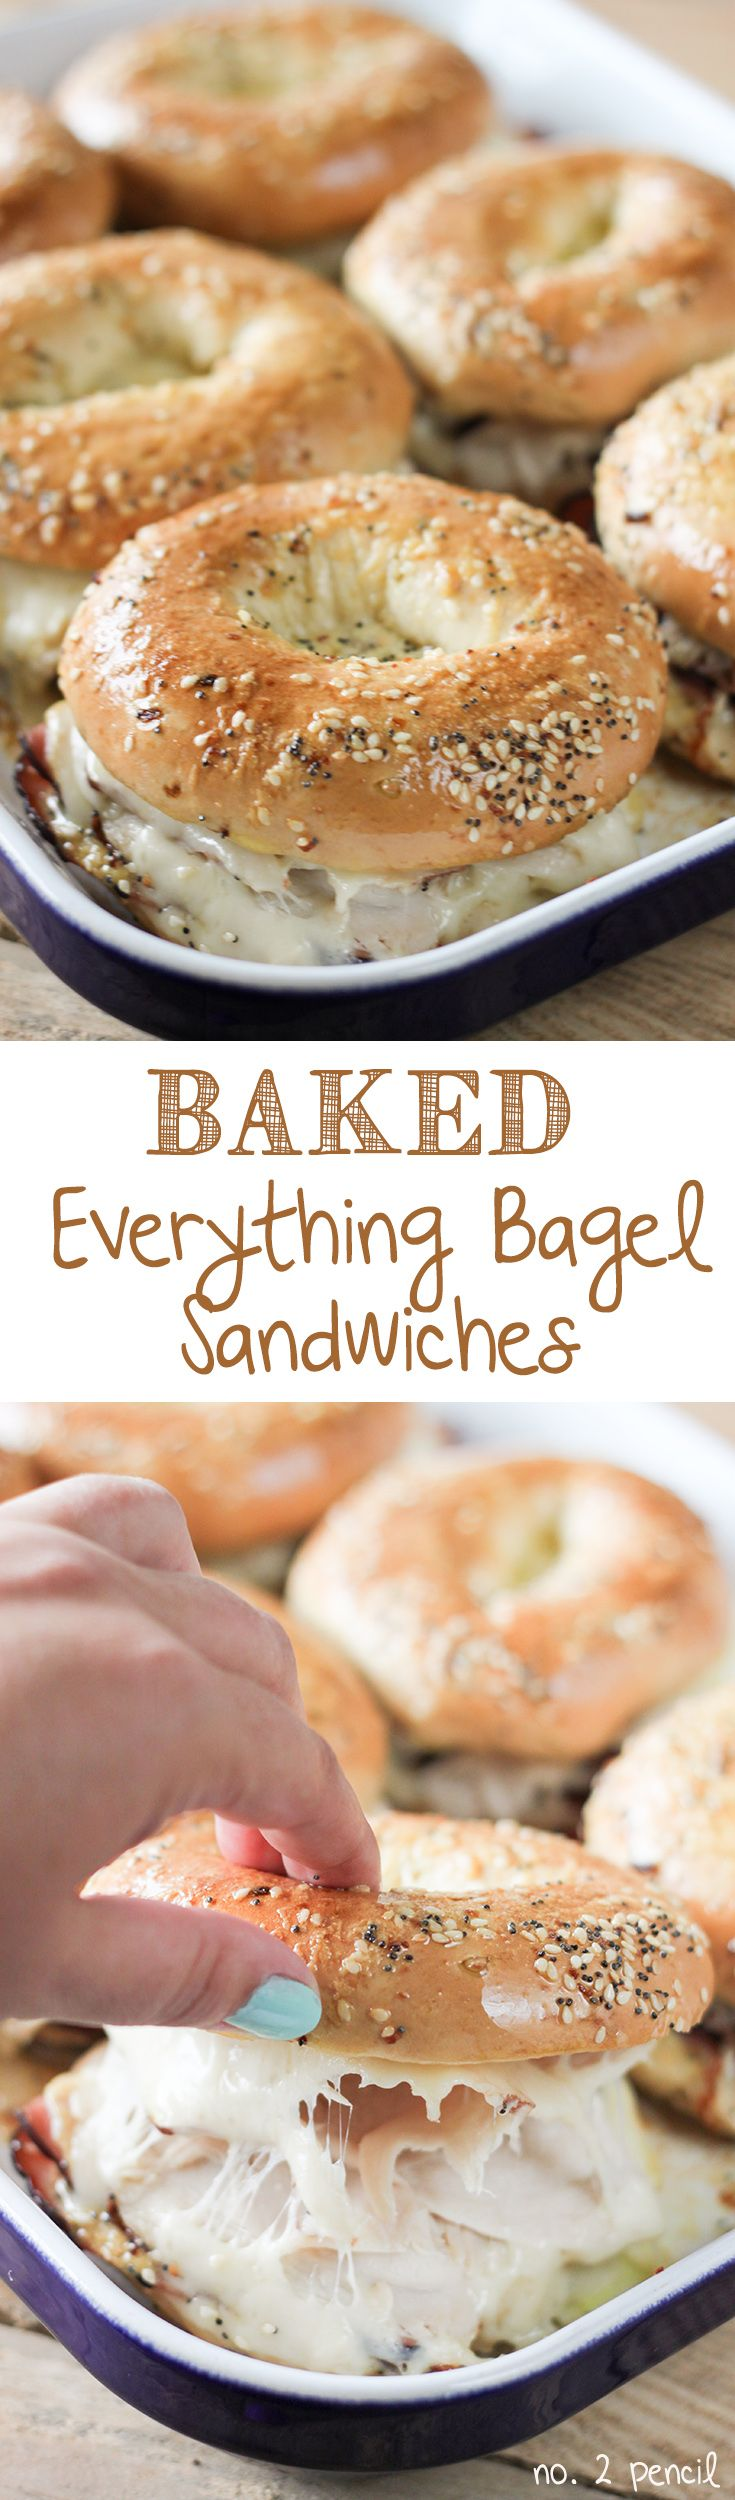 Baked Ham and Turkey Everything Bagel Sandwiches @thomasbreads                                                                                                                                                     More